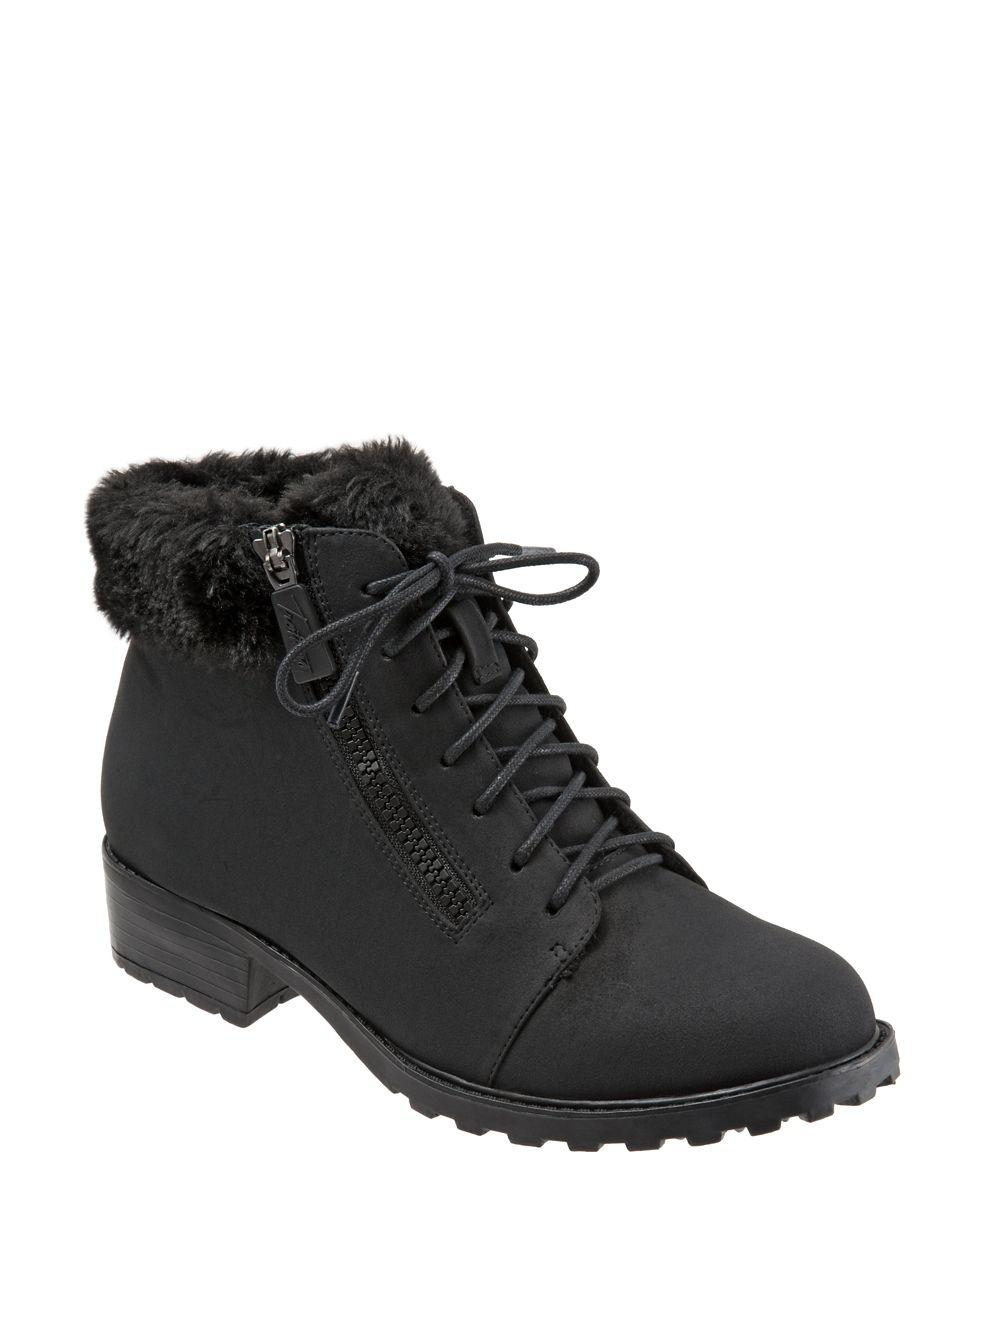 Trotters Brr Boot SBebDe23M